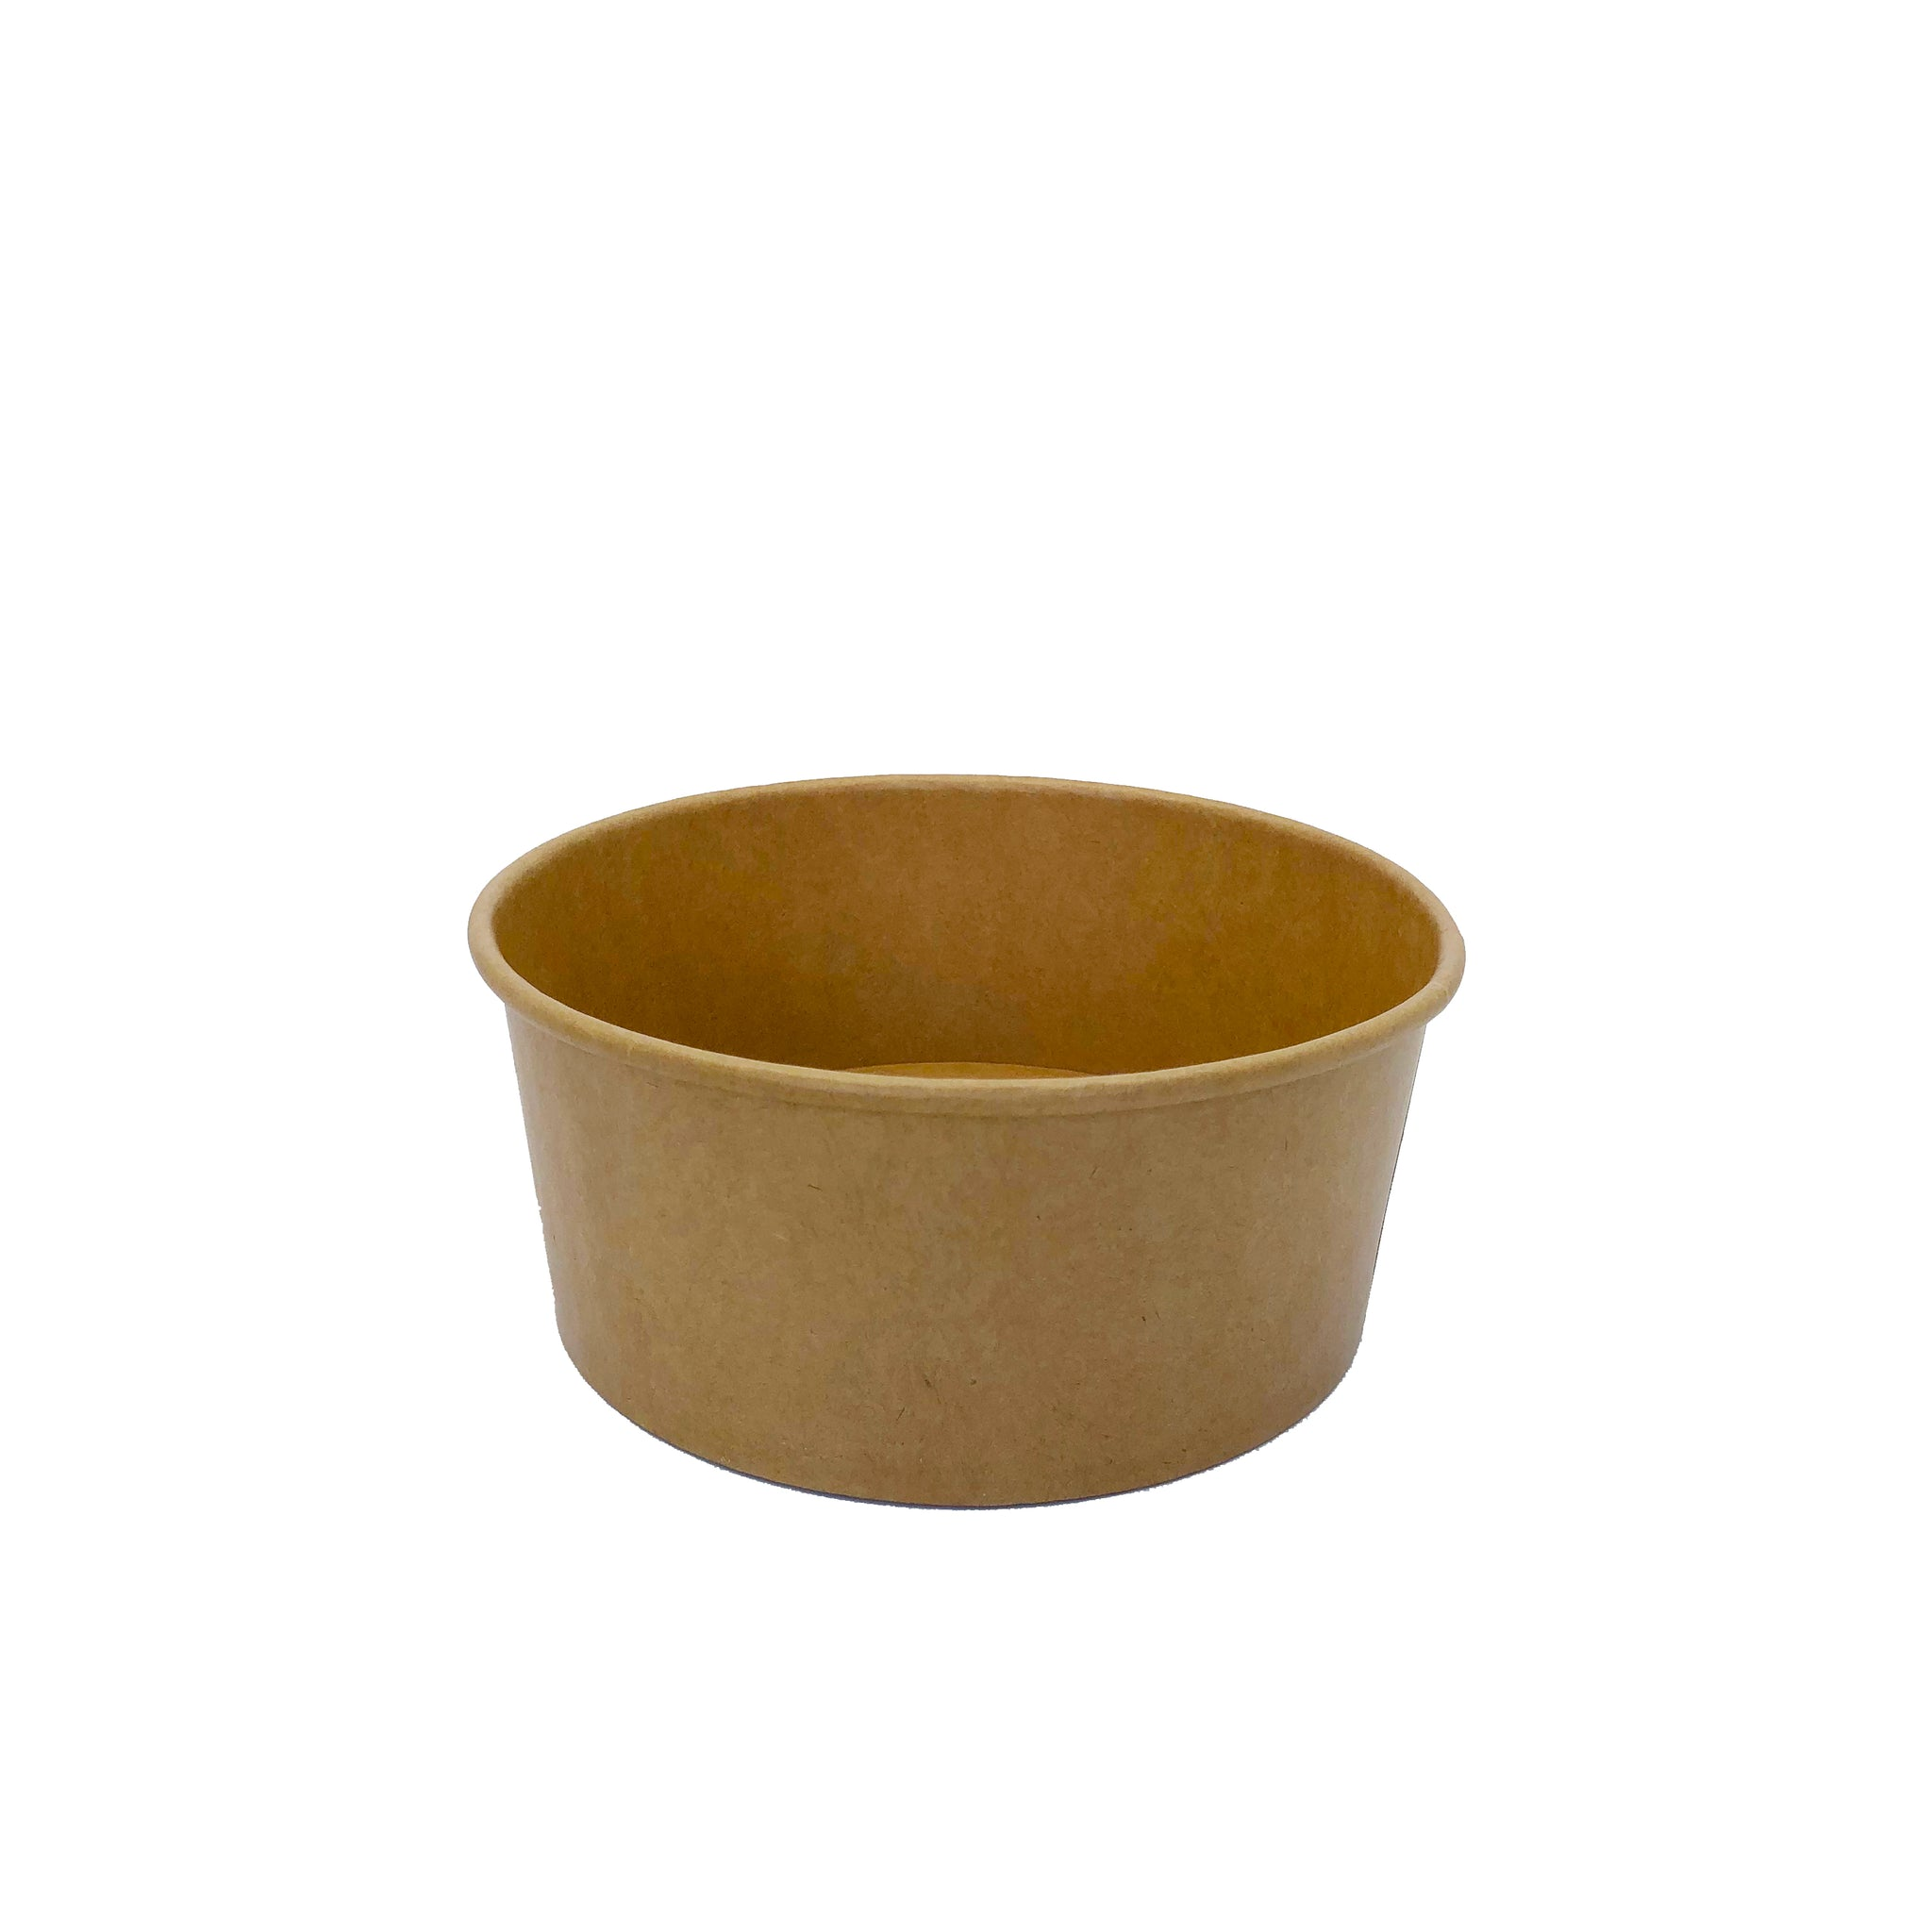 520ml Kraft Donburi Bowl